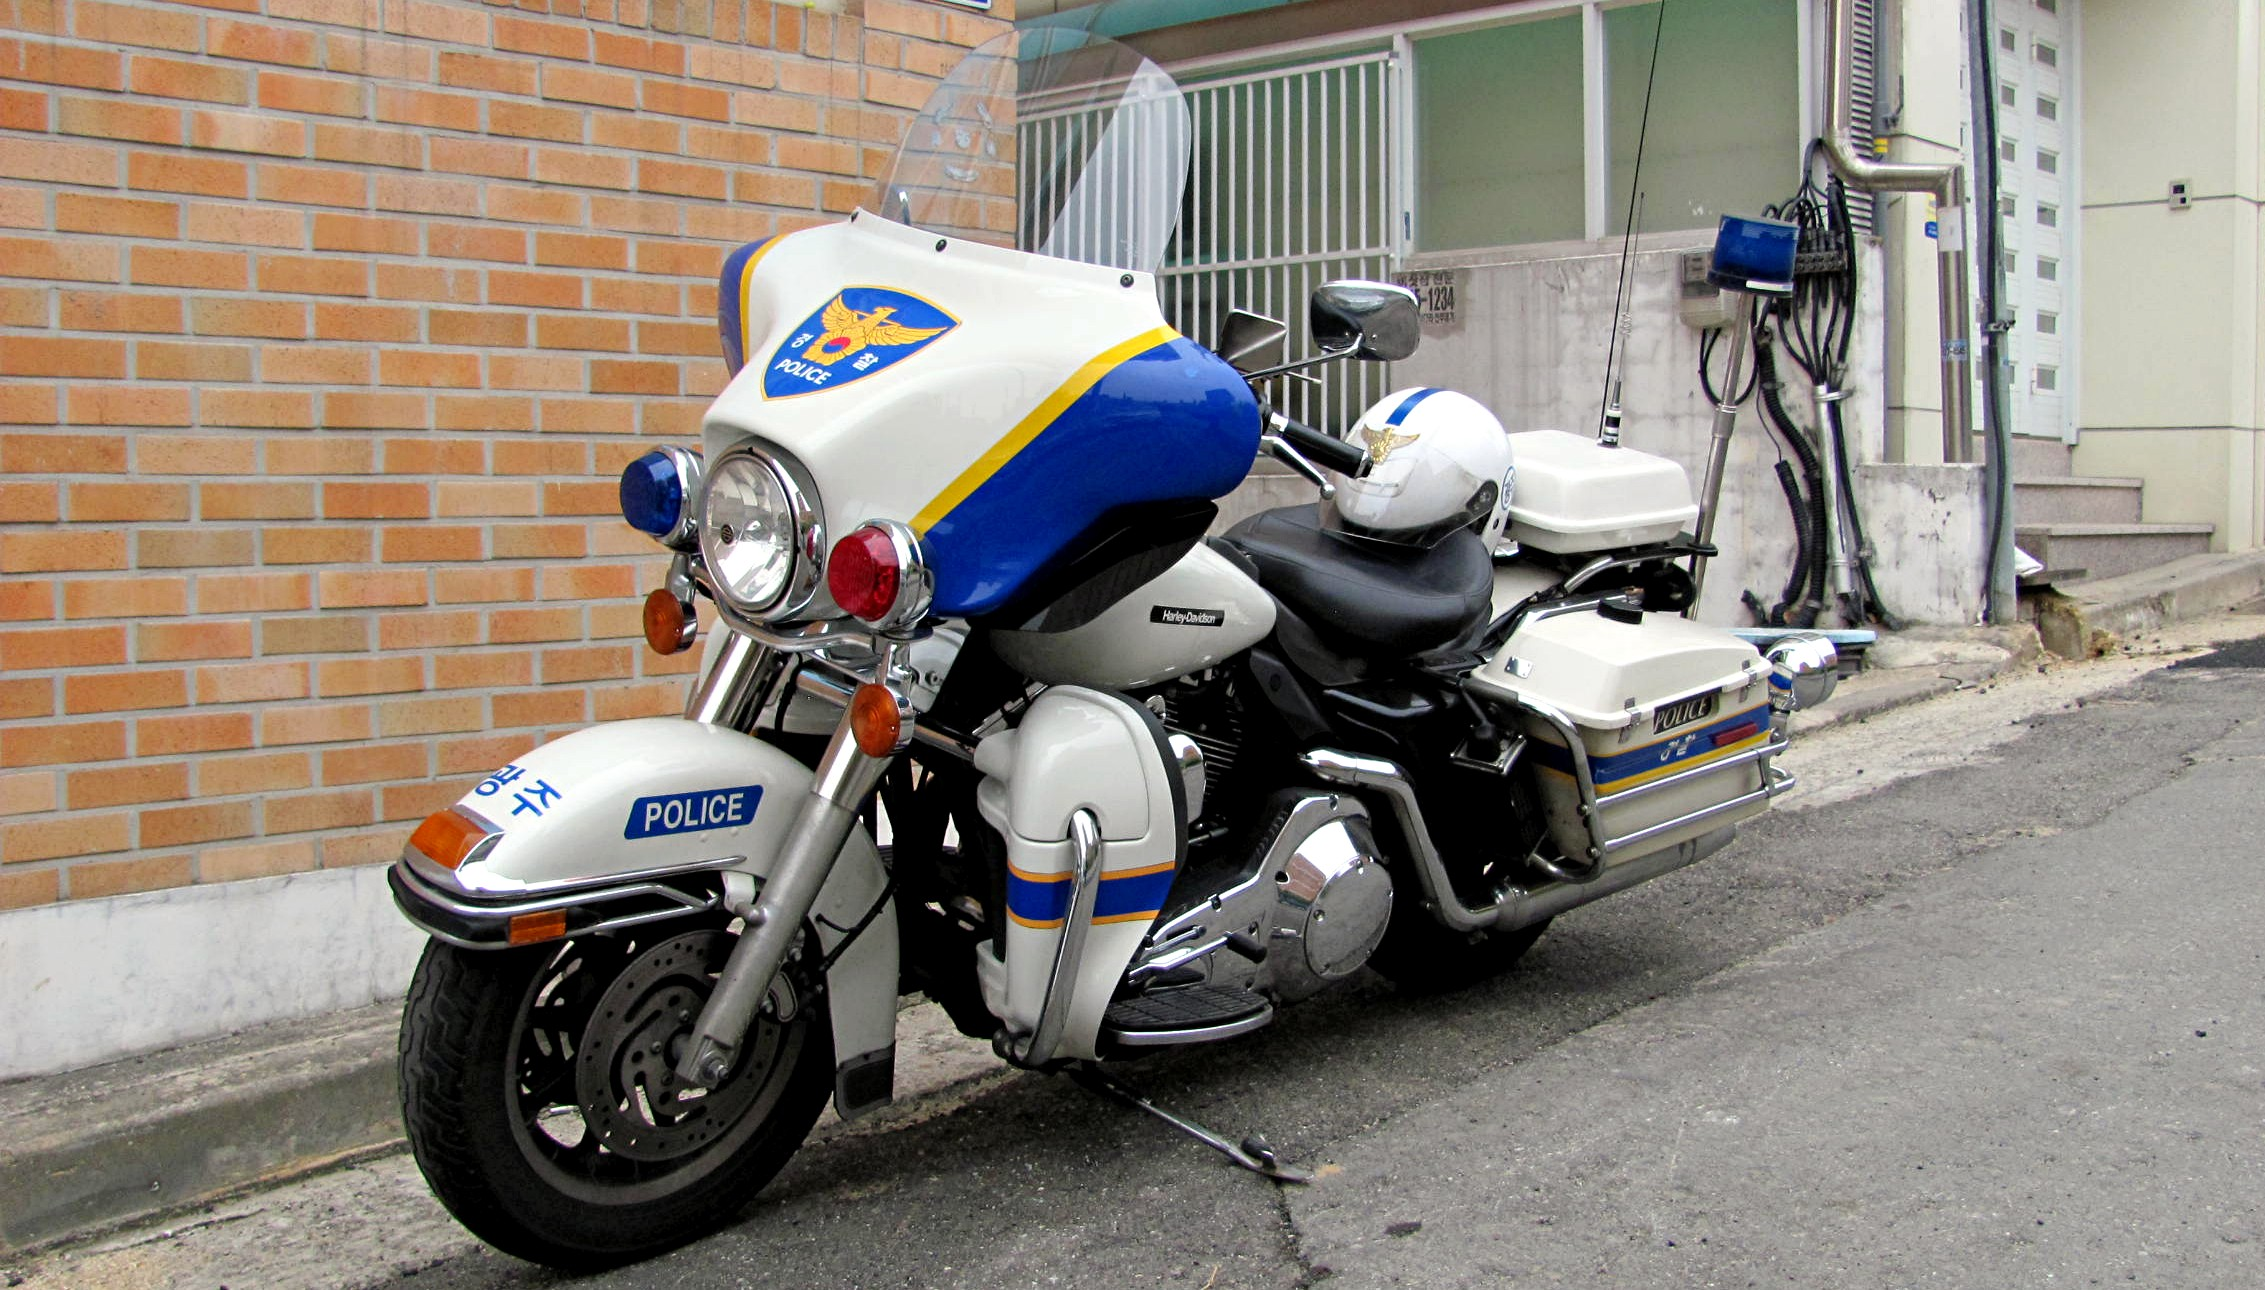 police harley bike davidson motorcycles motorbikes motorcycle korea cars vehicles cop motos cops motors biking patrol